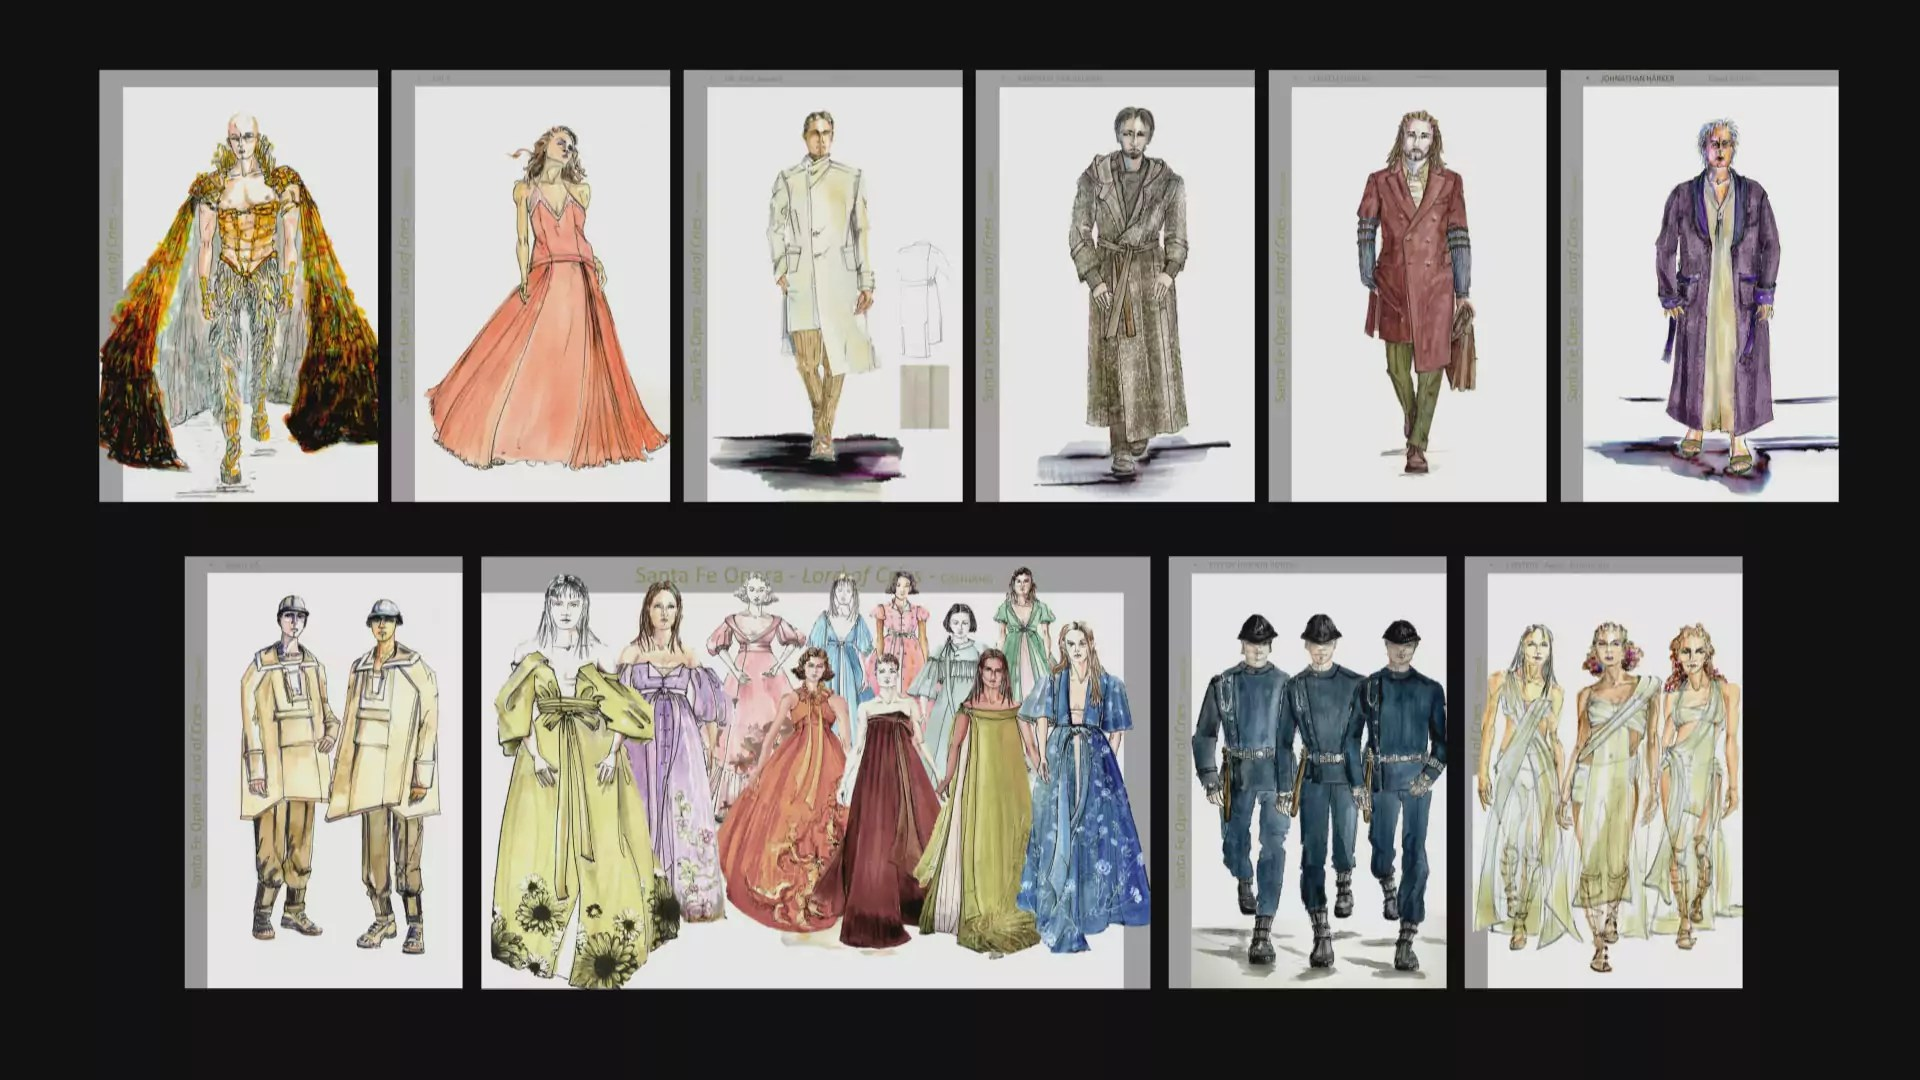 9 sketches of costumes for The Lord of Cries opera characters